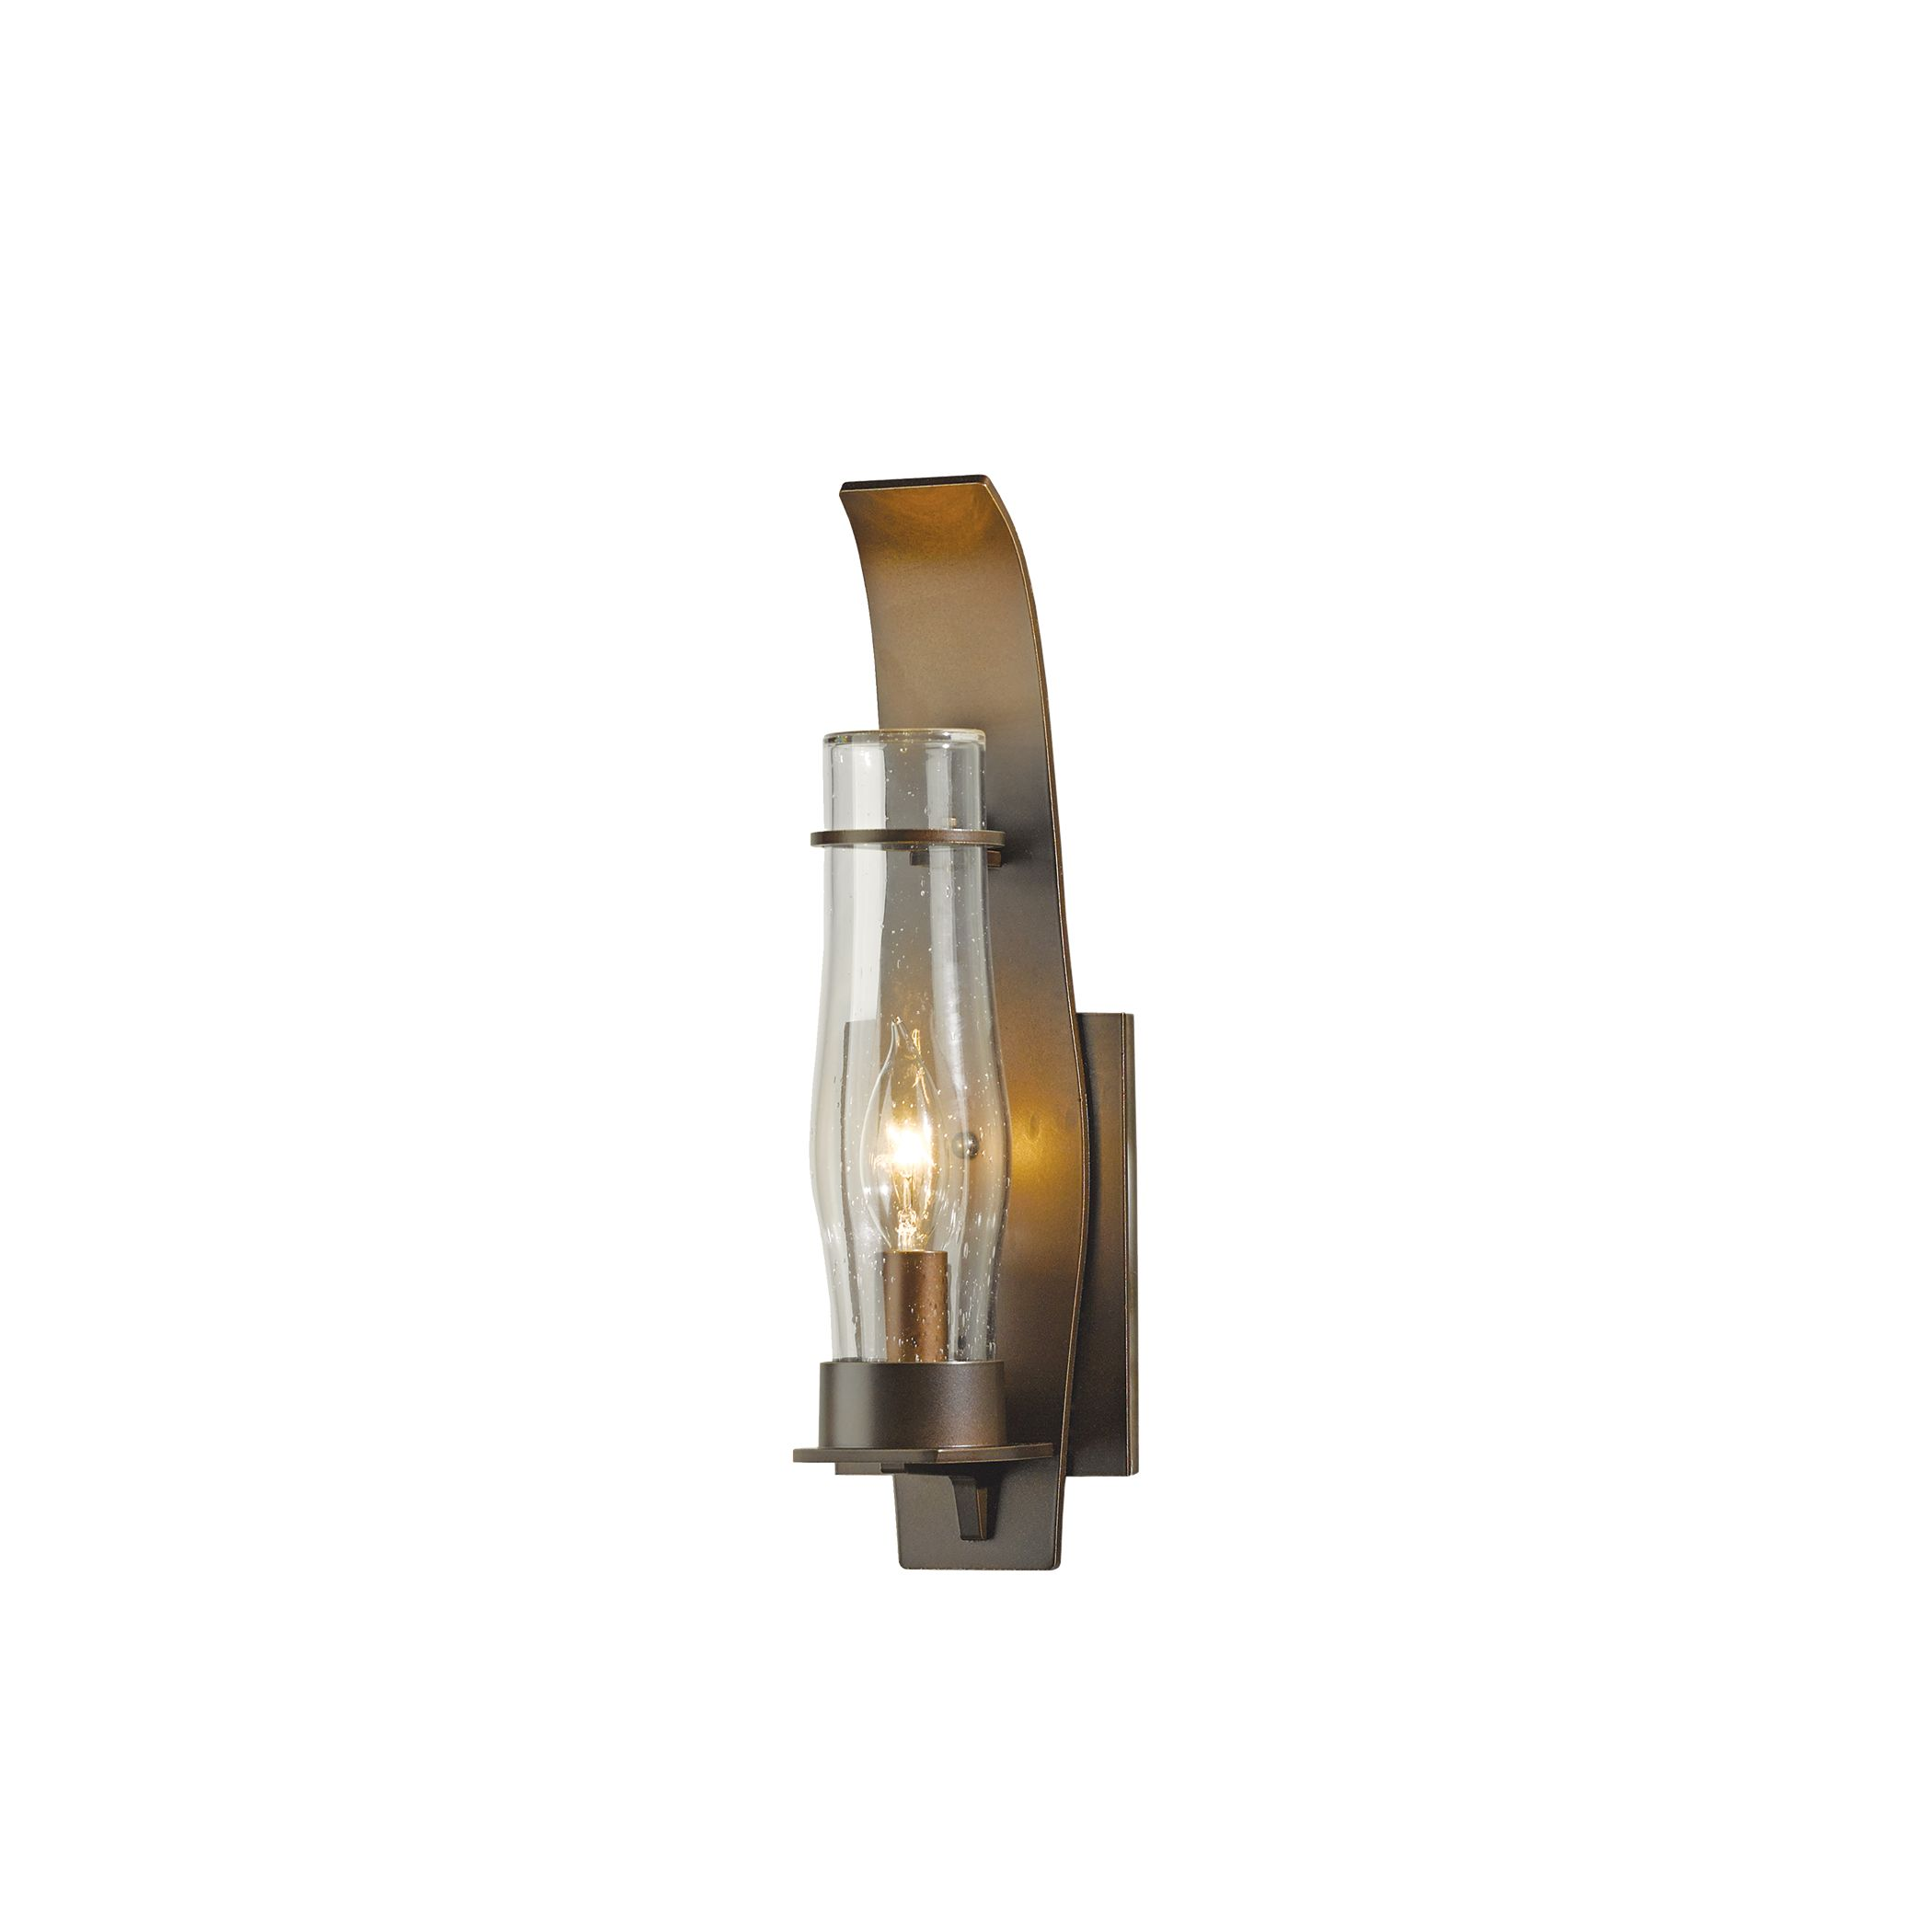 Thumbnail for Sea Coast Small Outdoor Sconce